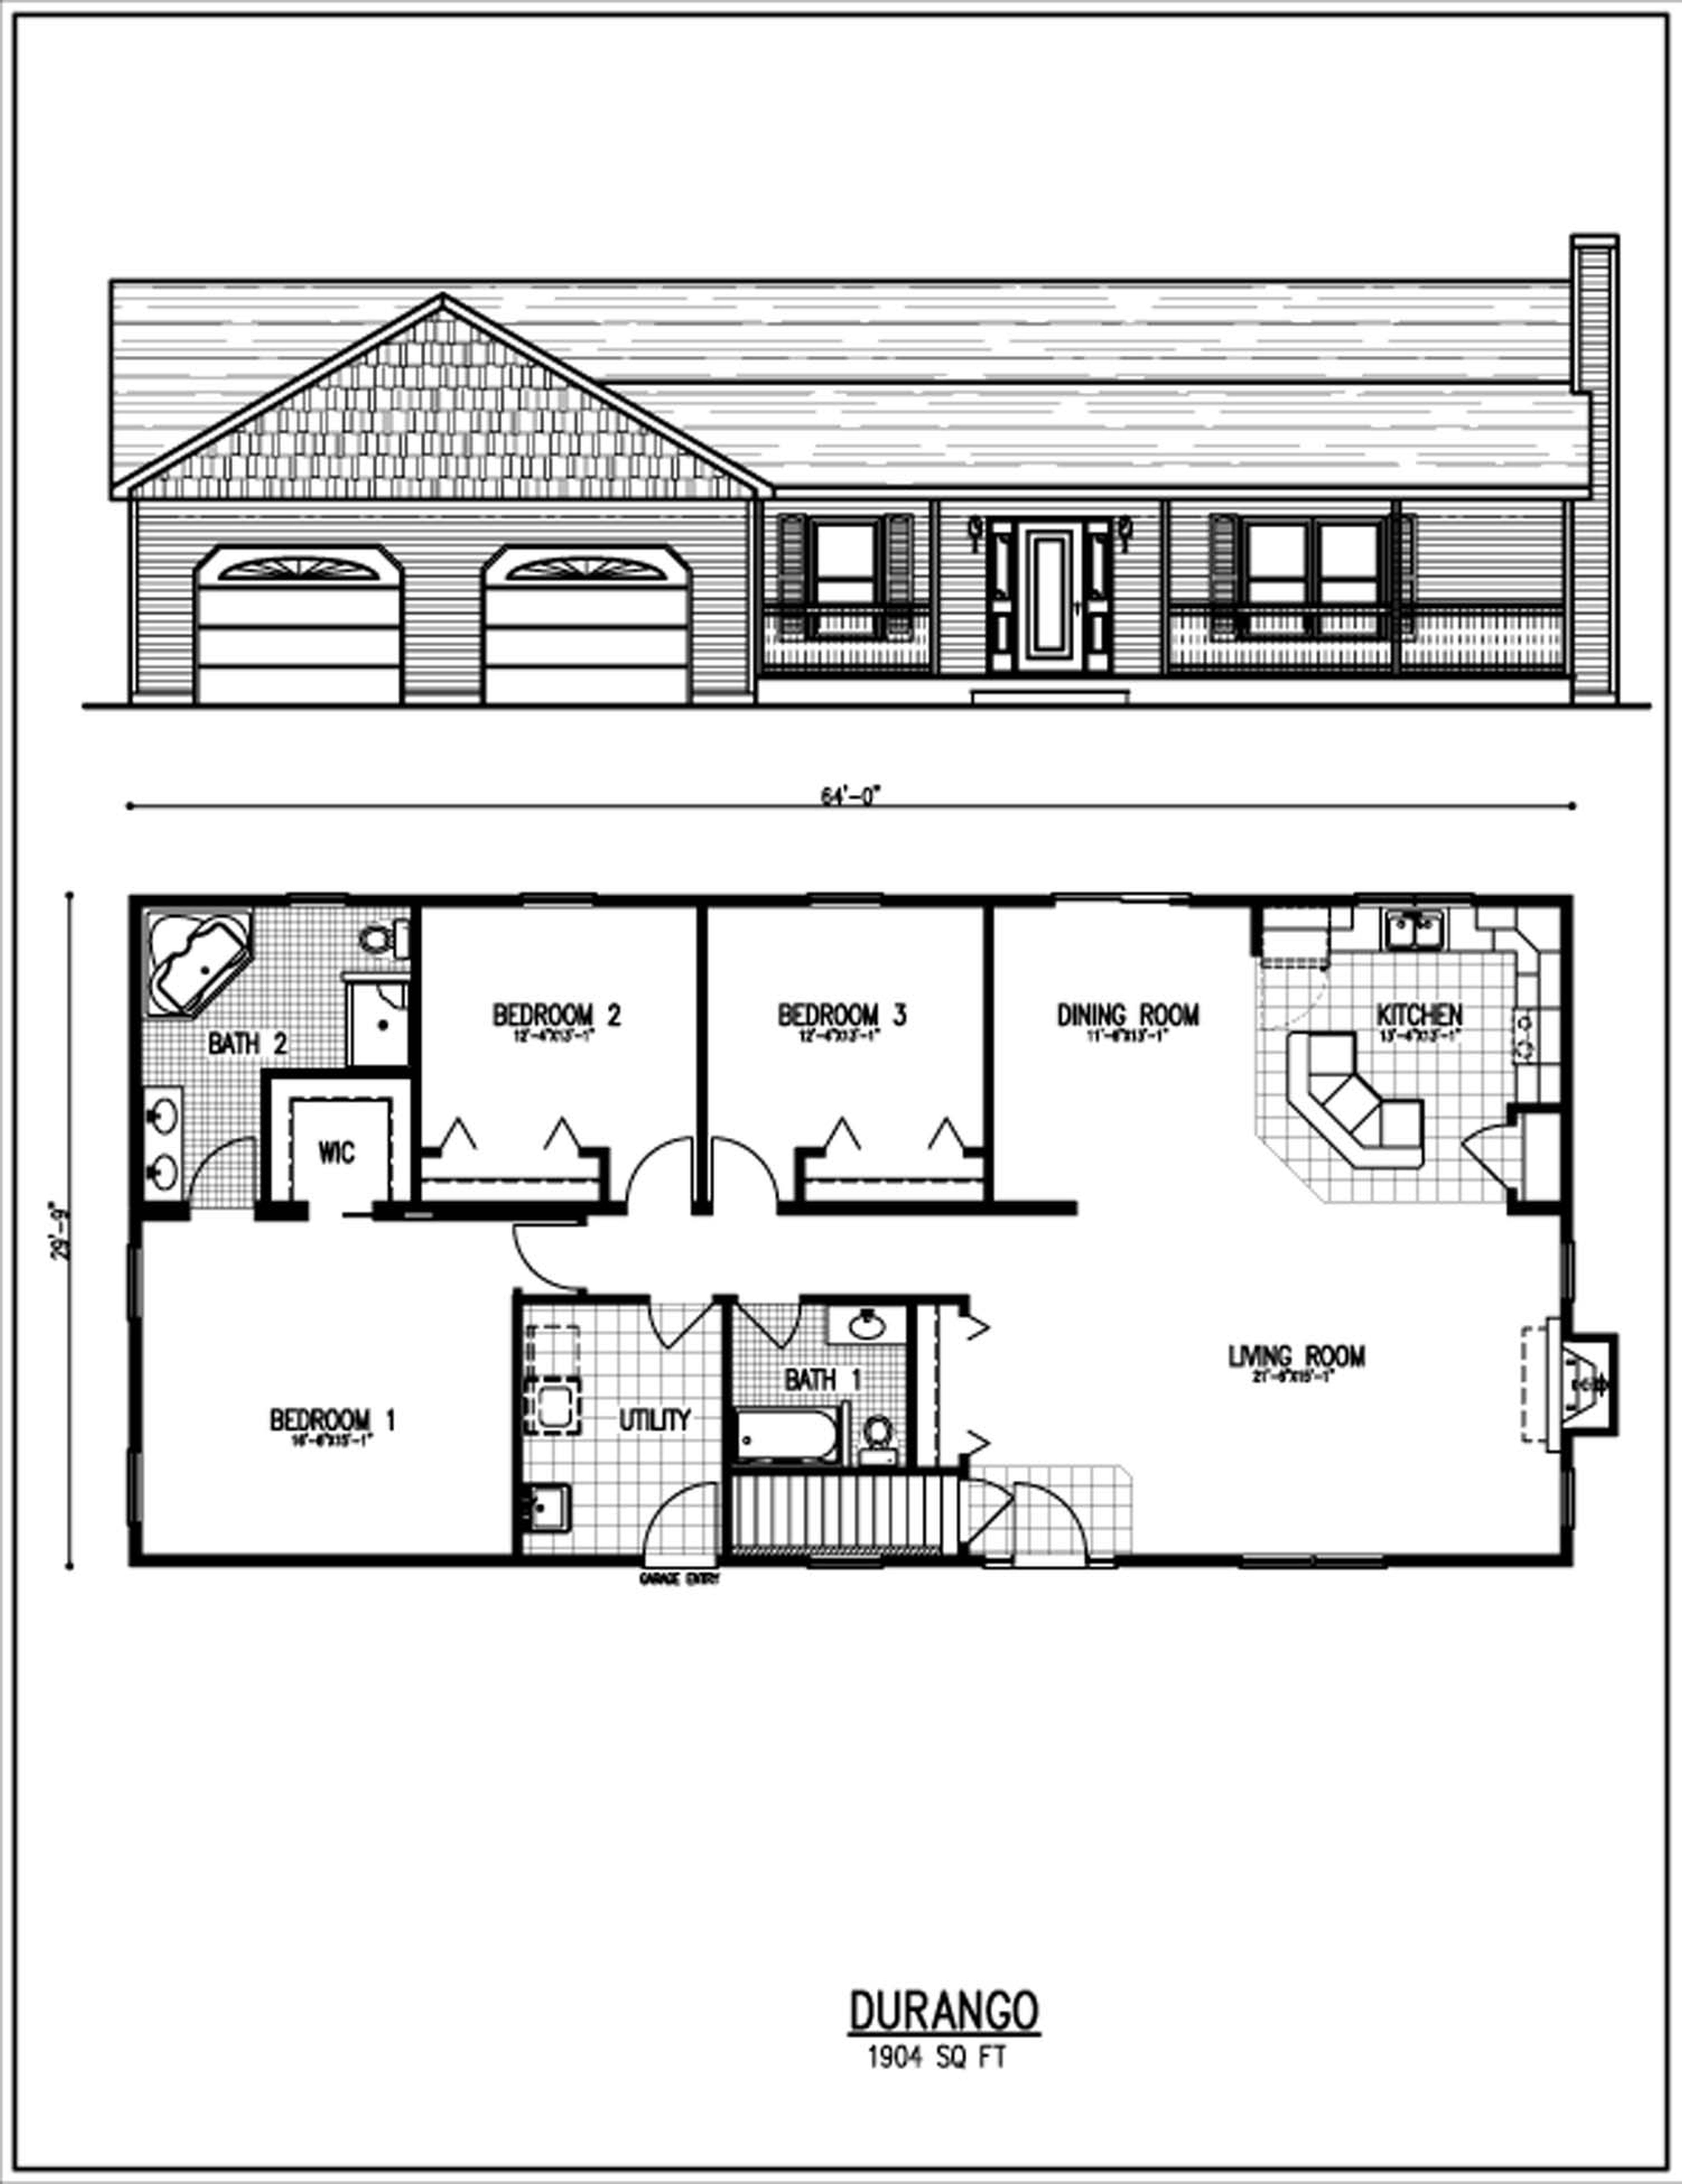 App to Design House Plans Elegant Architectures Nice 5 Bedroom House Designs for Interior